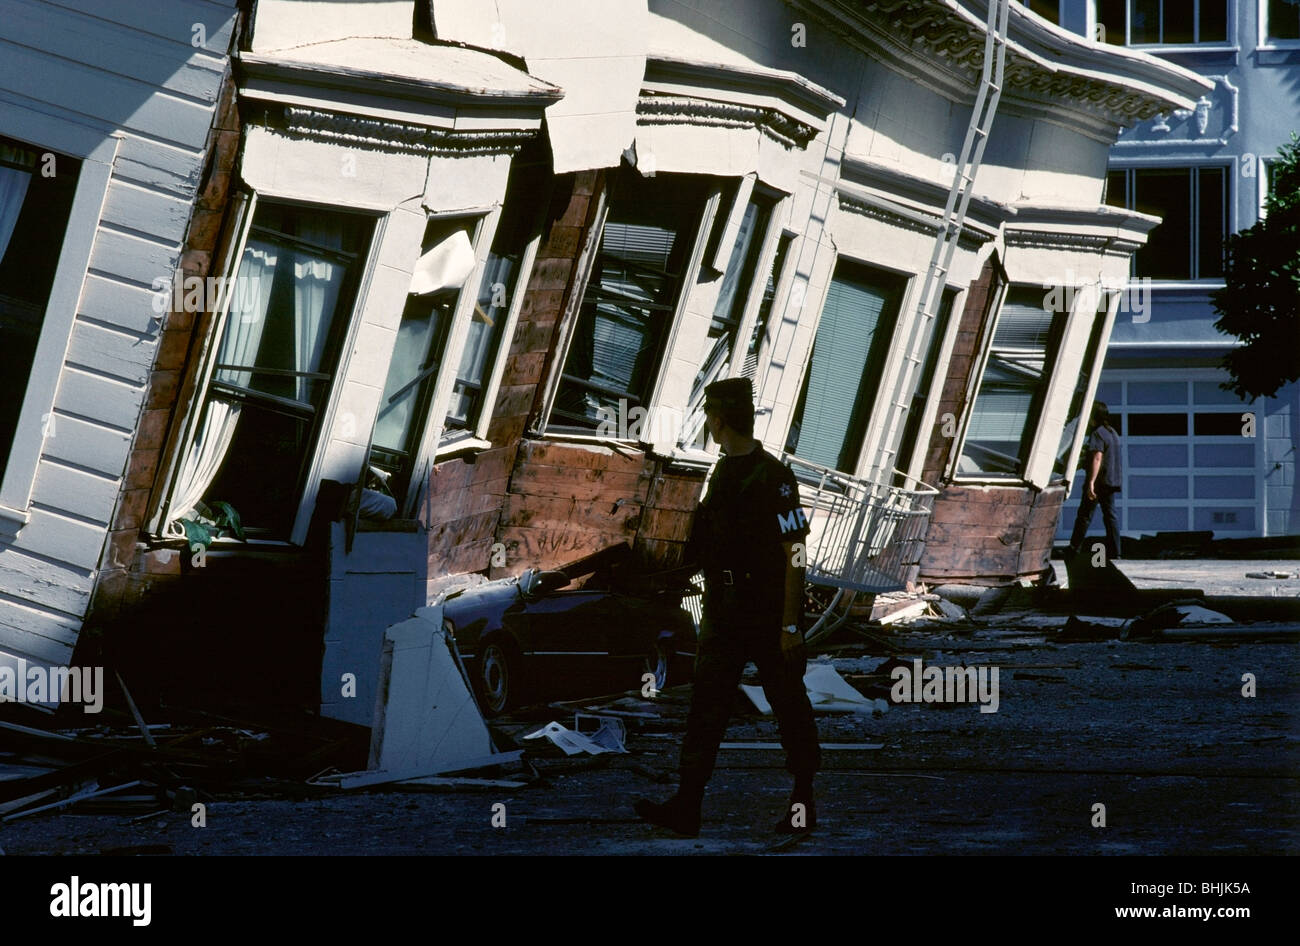 bcf0b540 Military policeman walks past a damaged apartment building in the Marina  District after the 1989 Loma